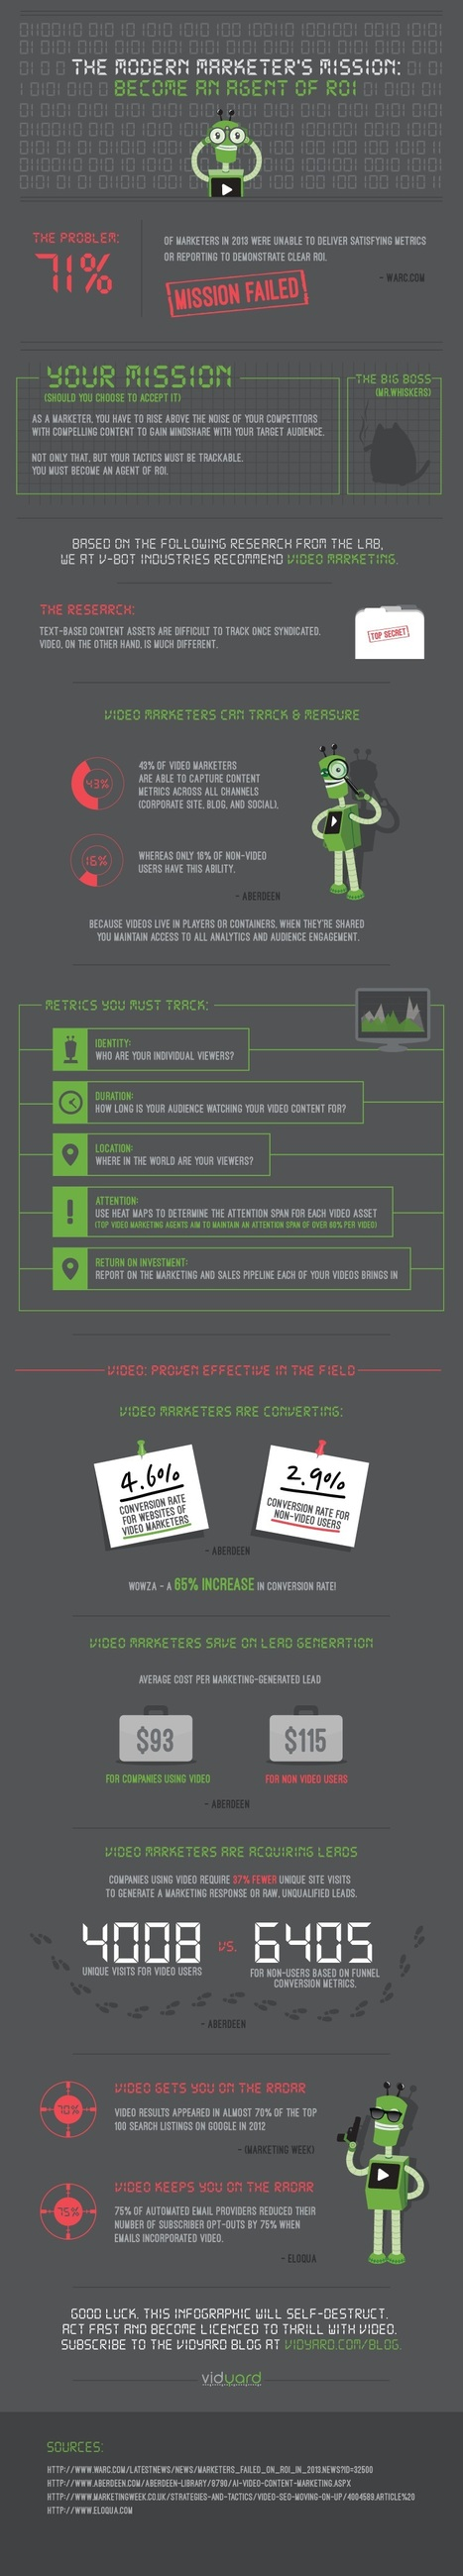 Video Marketers Prove ROI Better Than Text-Based Marketers [Infographic] | Video Transformation | Scoop.it